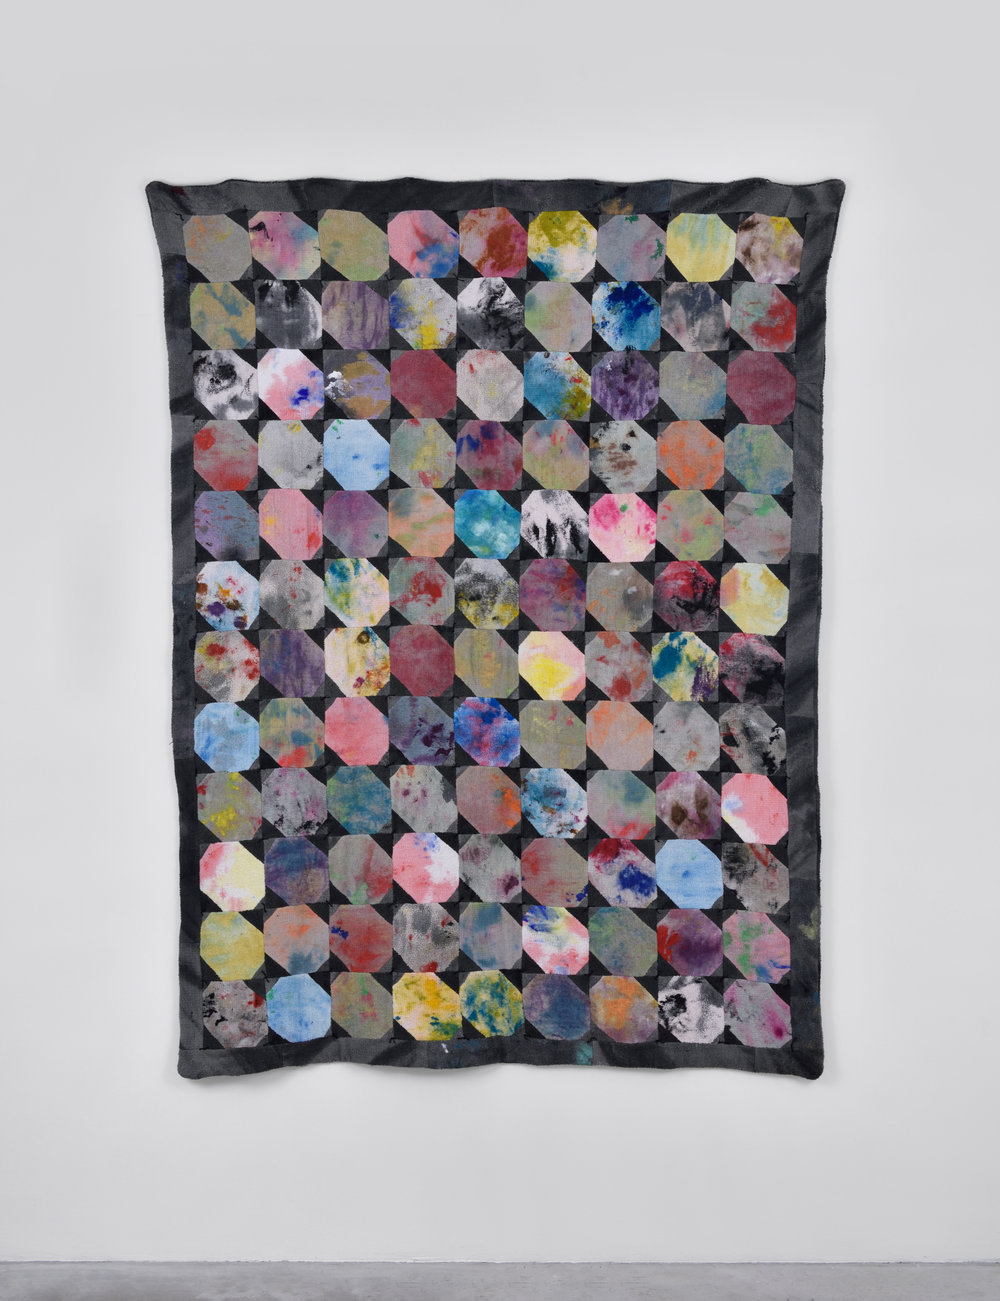 Rag Quilt #2, 2015 studio rags, acrylic and latex paint, thread. Sewn by Gina Ross 185,4 x 134,6 cm - 73 x 53 inches